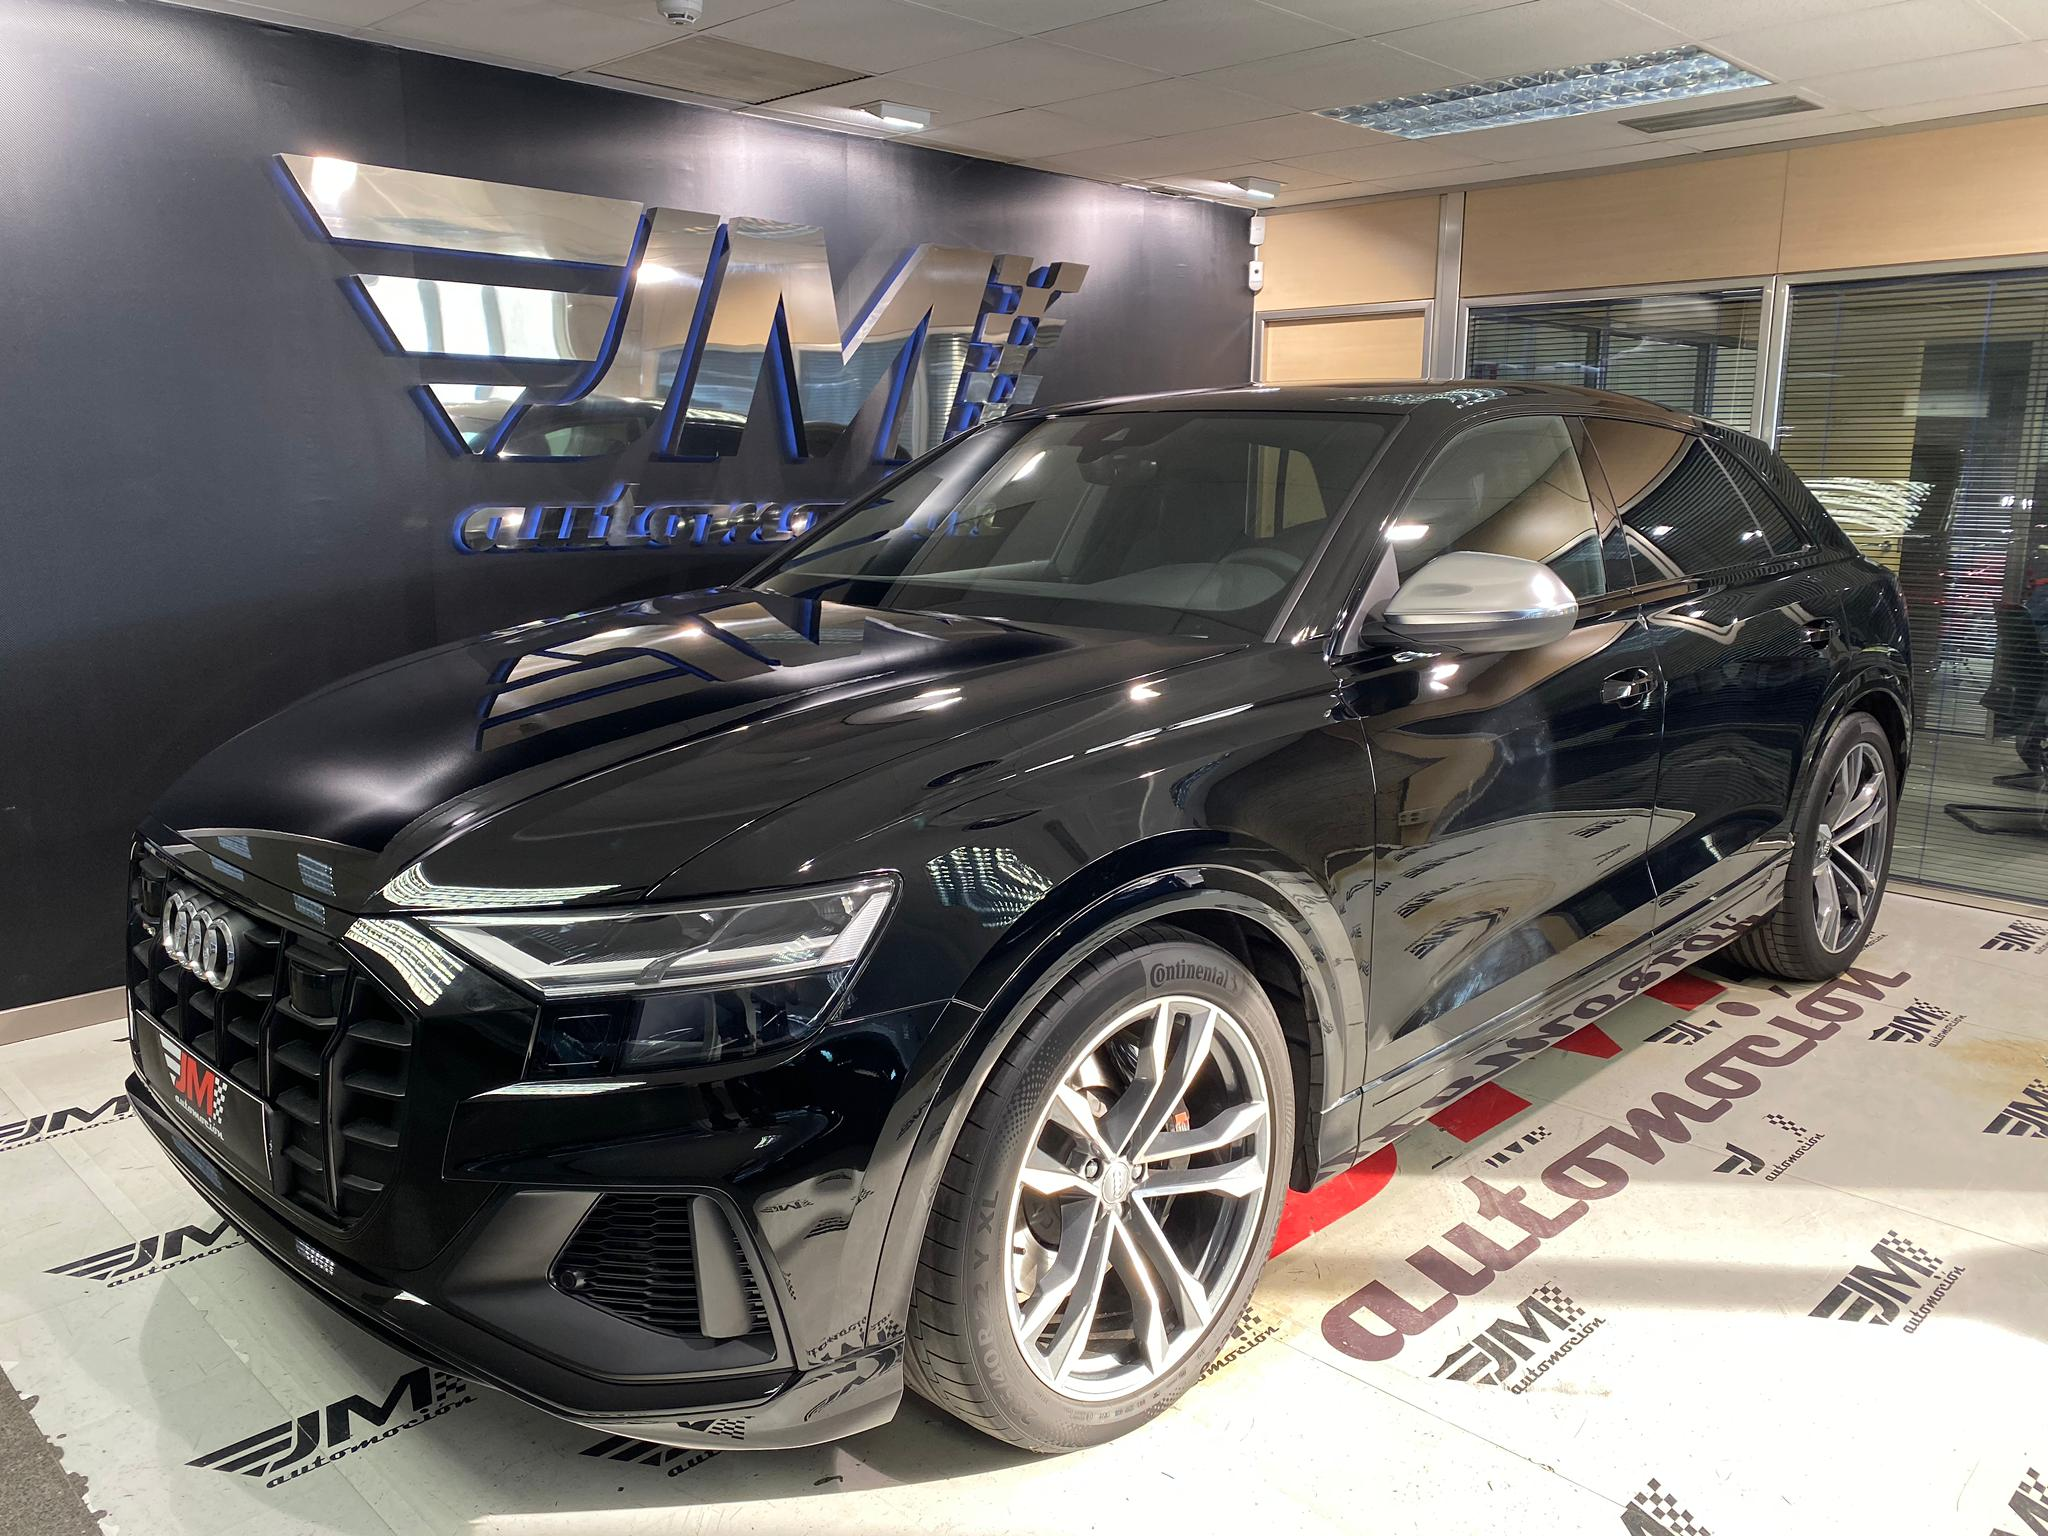 AUDI SQ8 4.0 V8 TDI QUATTRO 435CV IVA DEDUCIBLE